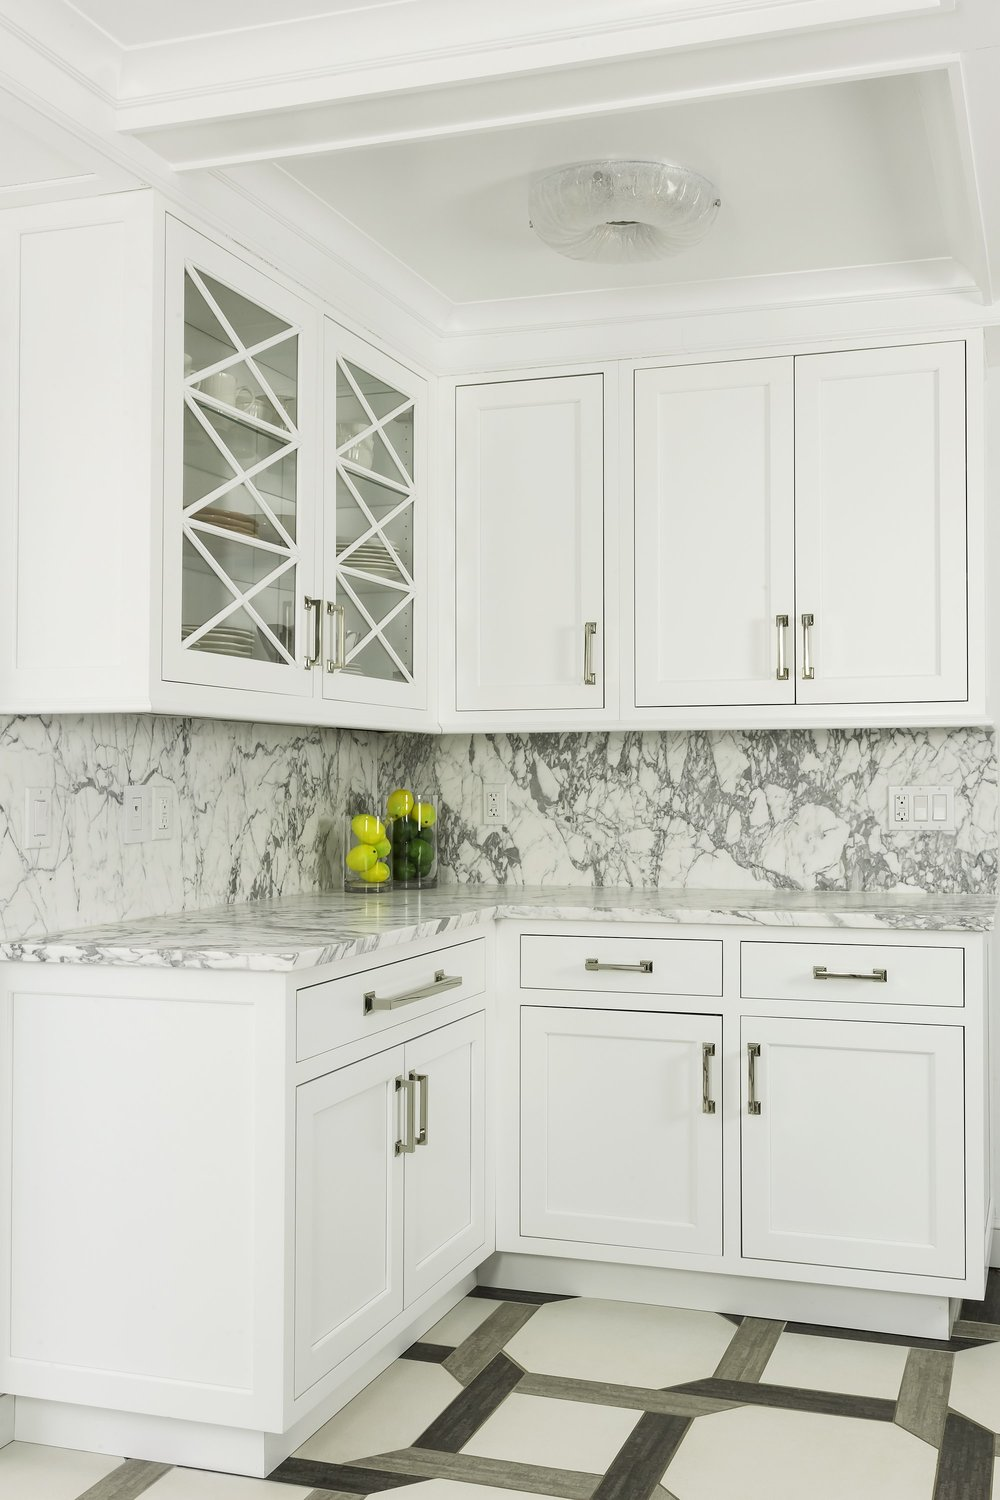 Transitional style kitchen with glass door upper cabinet